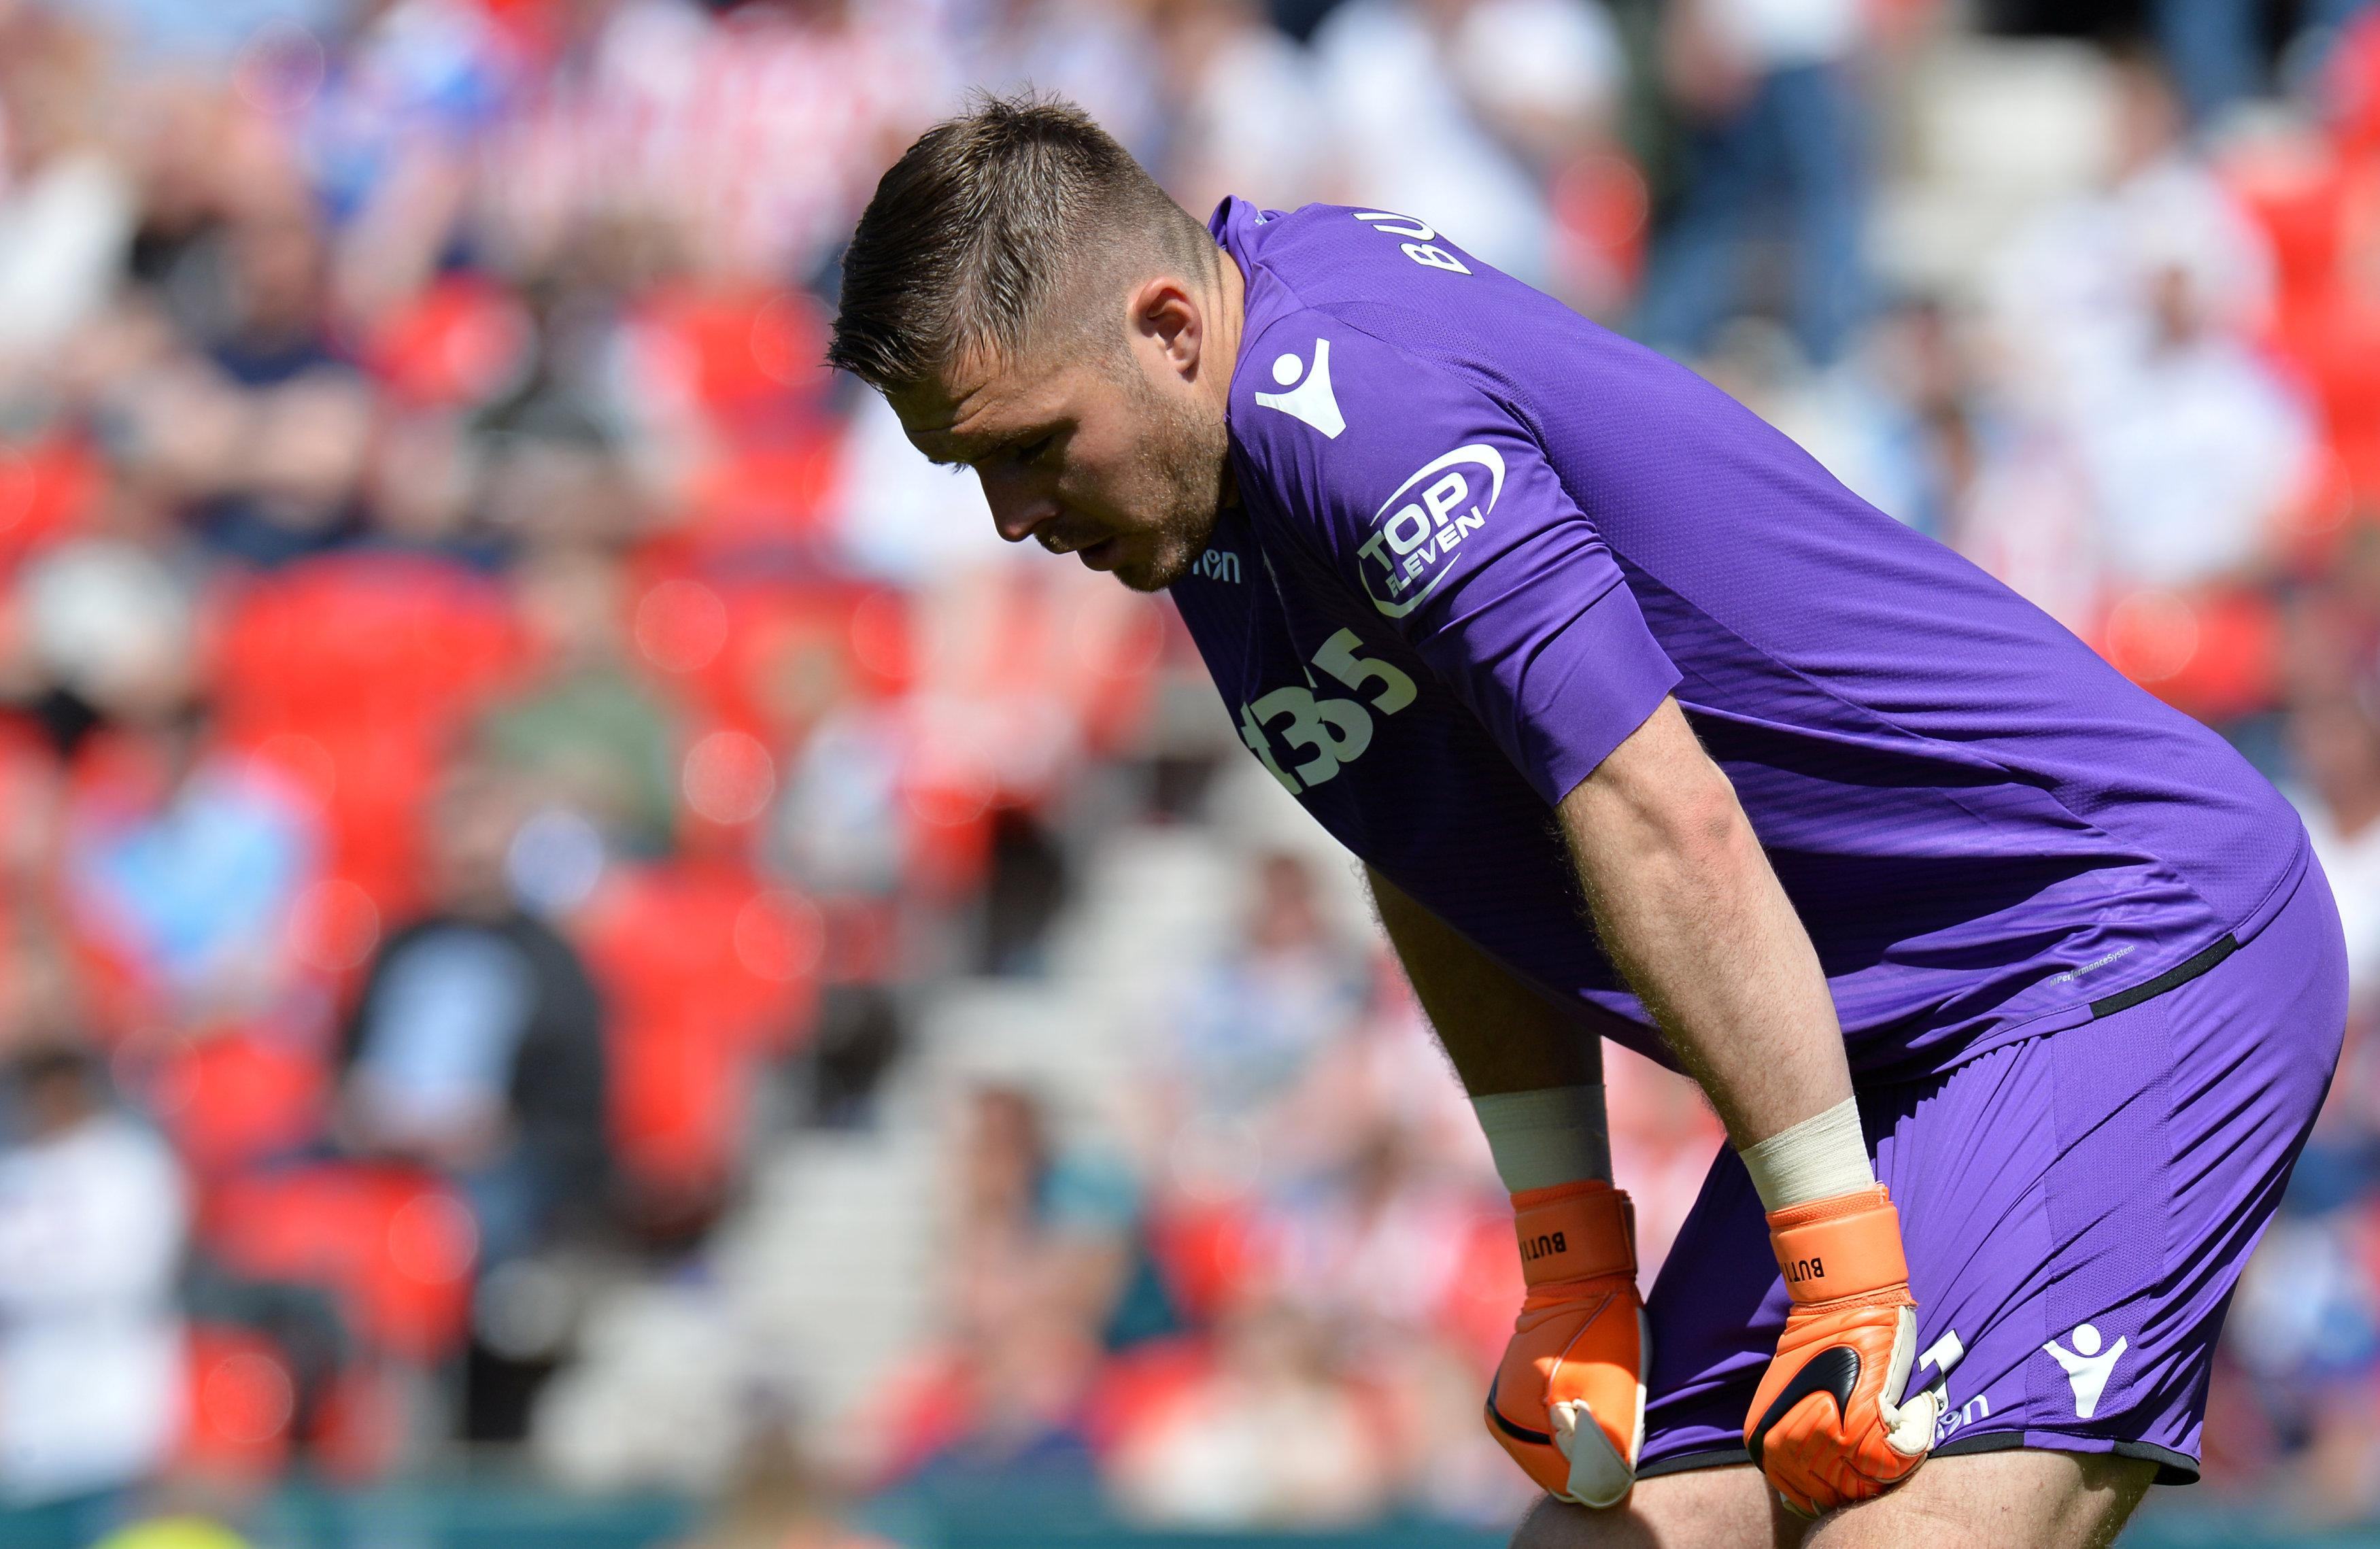 Butland was in tears at the final whistle